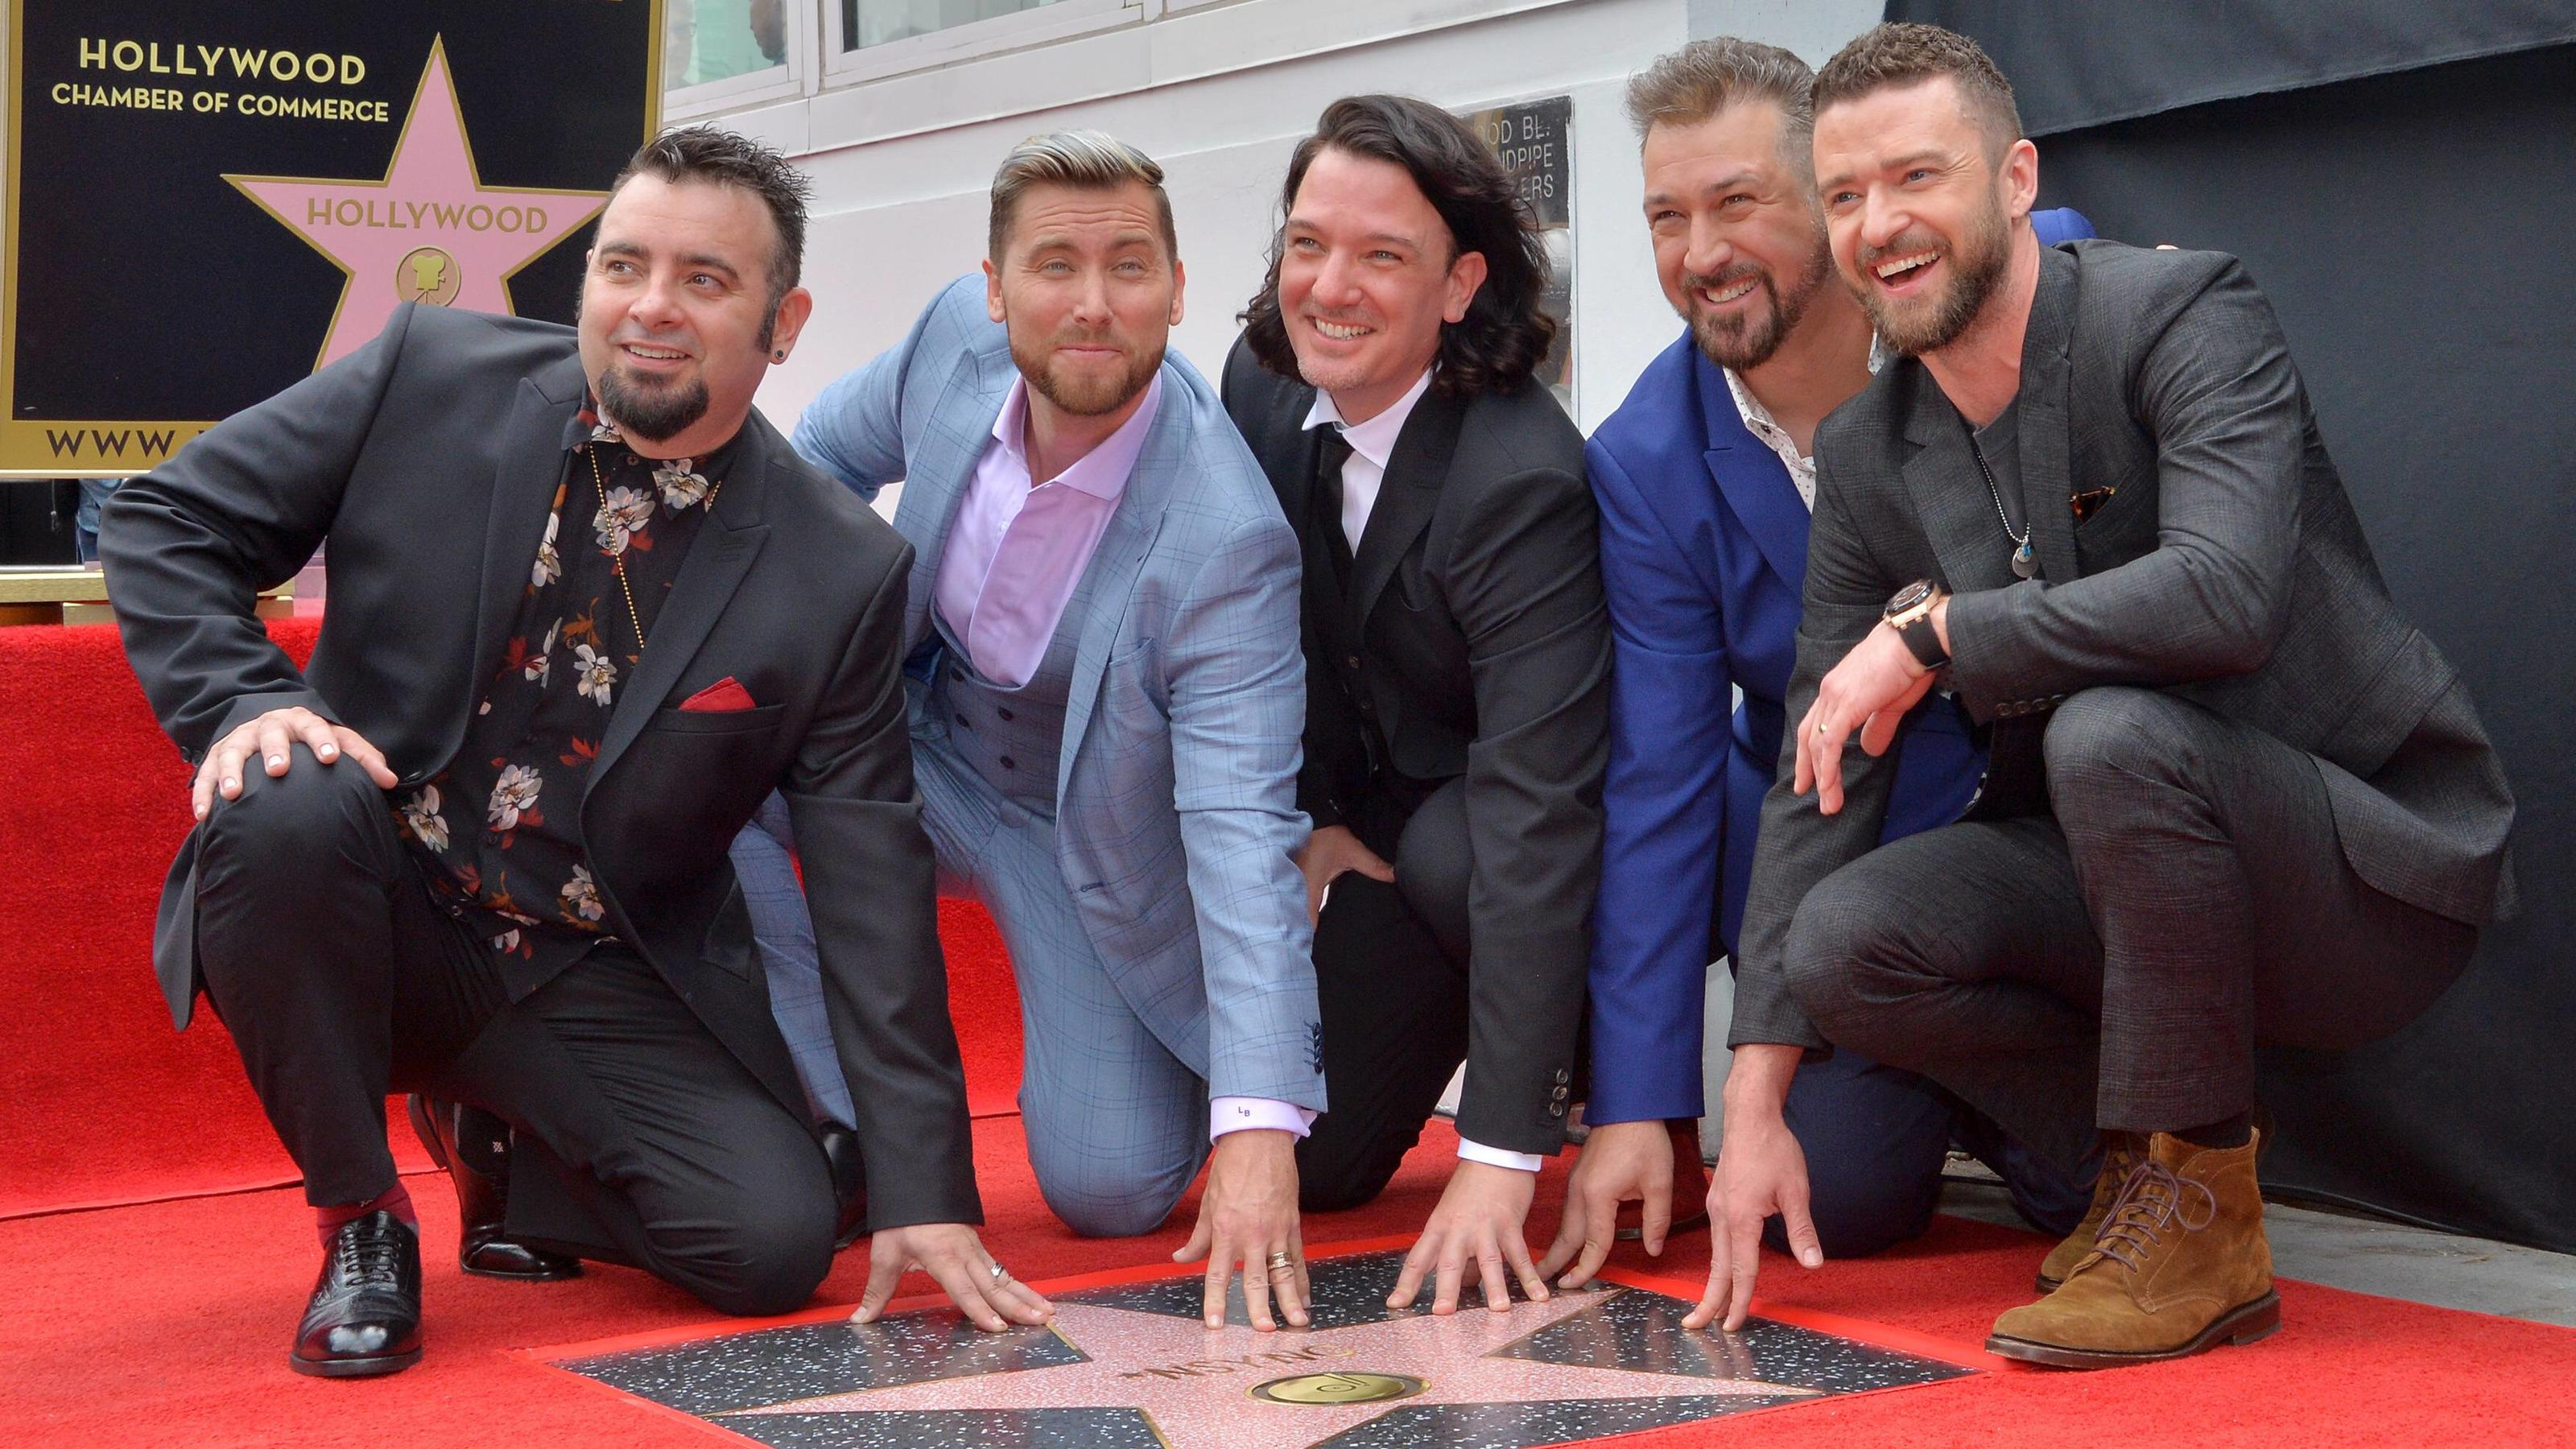 Members of the iconic 90 s boyband *NSYNC Chris Kirkpatrick, Lance Bass, JC Chasez, Joey Fatone and Justin Timberlake (L-R) gather for a photo-op as the band receives the 2,636th star on the Hollywood Walk of fame during an unveiling ceremony in Los